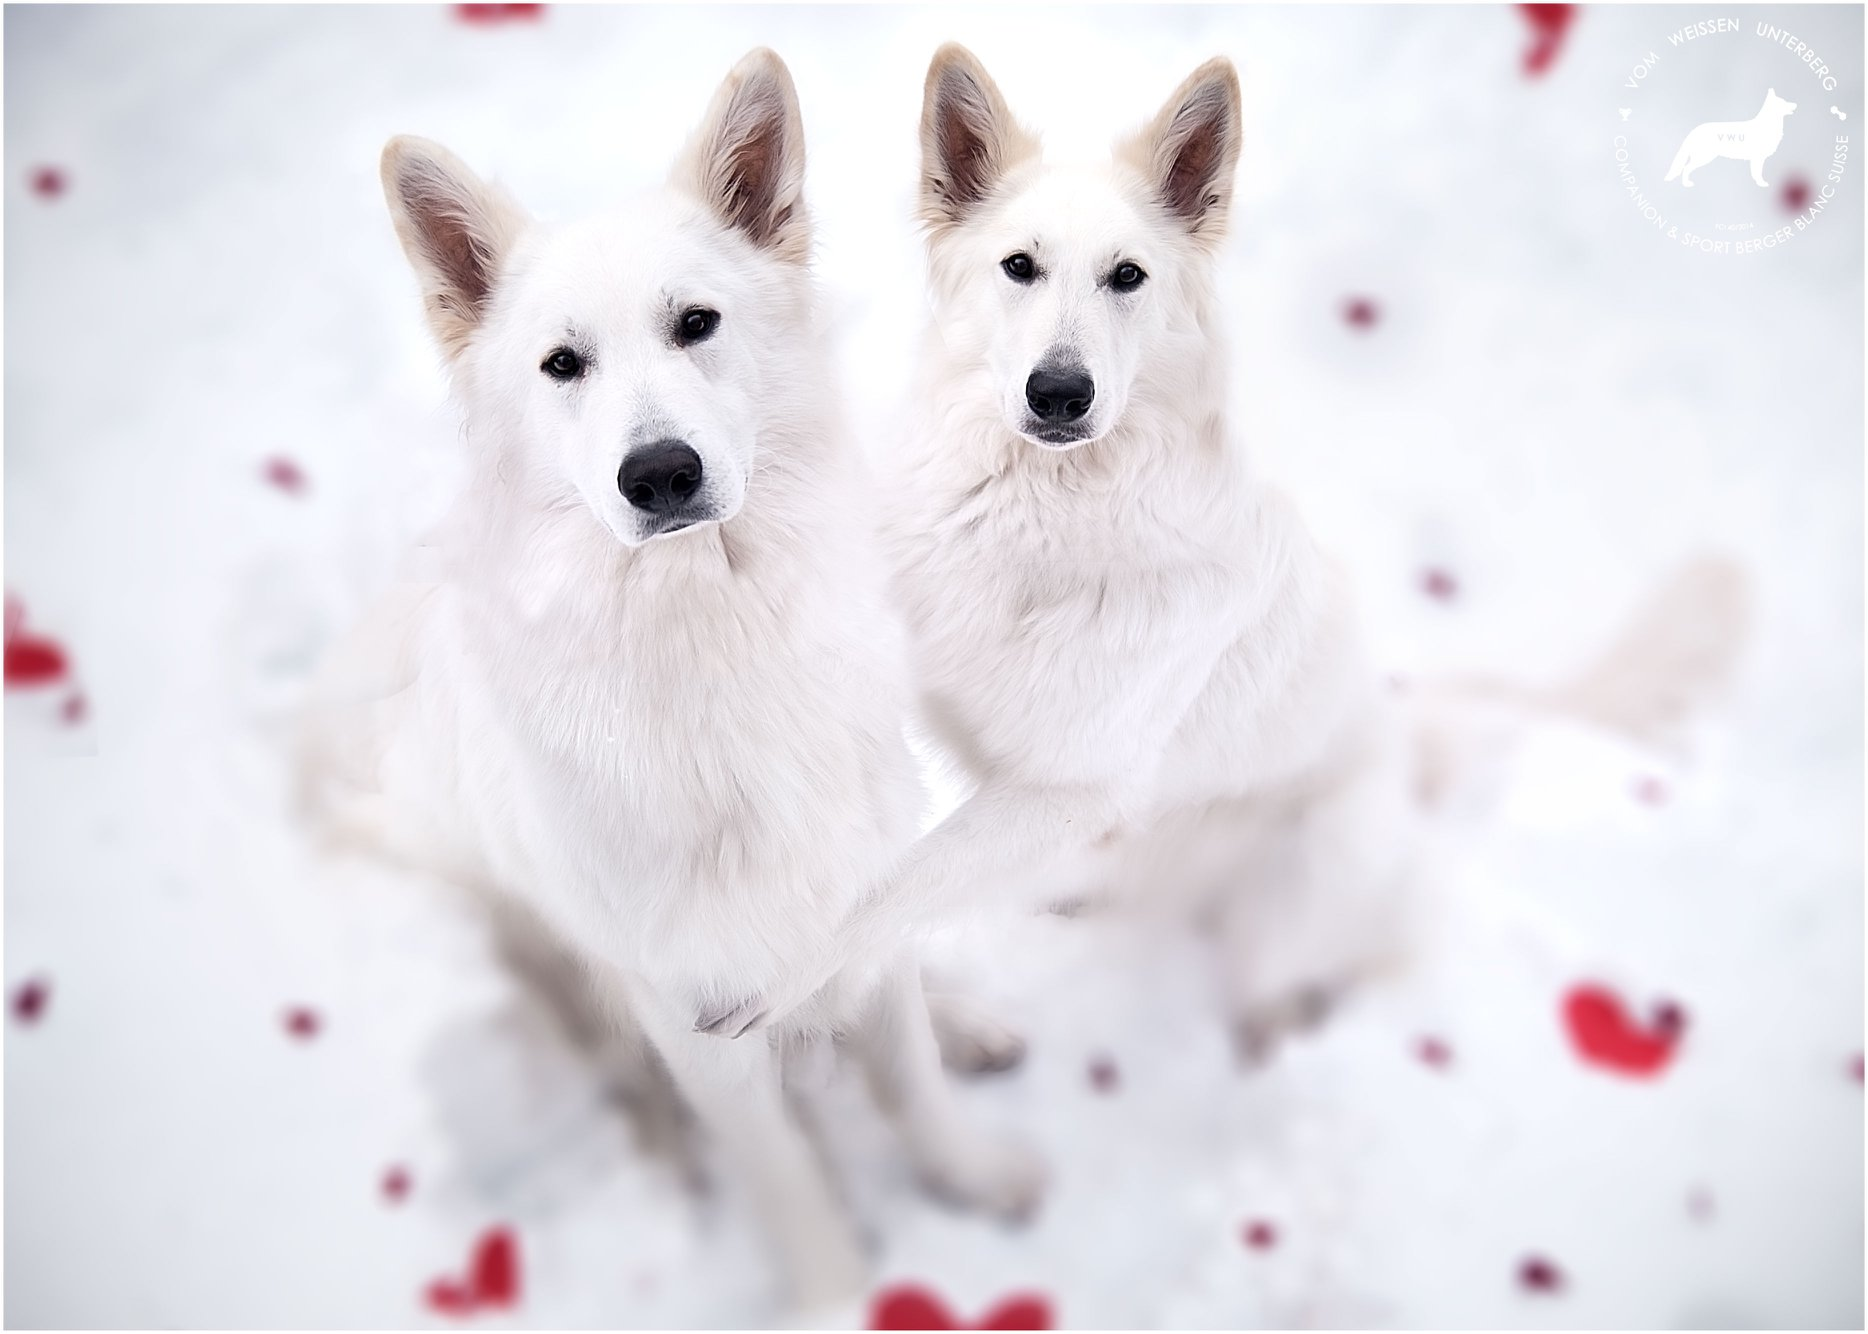 Pregnancy confirmed! Puppies expected on Valentine's day <3